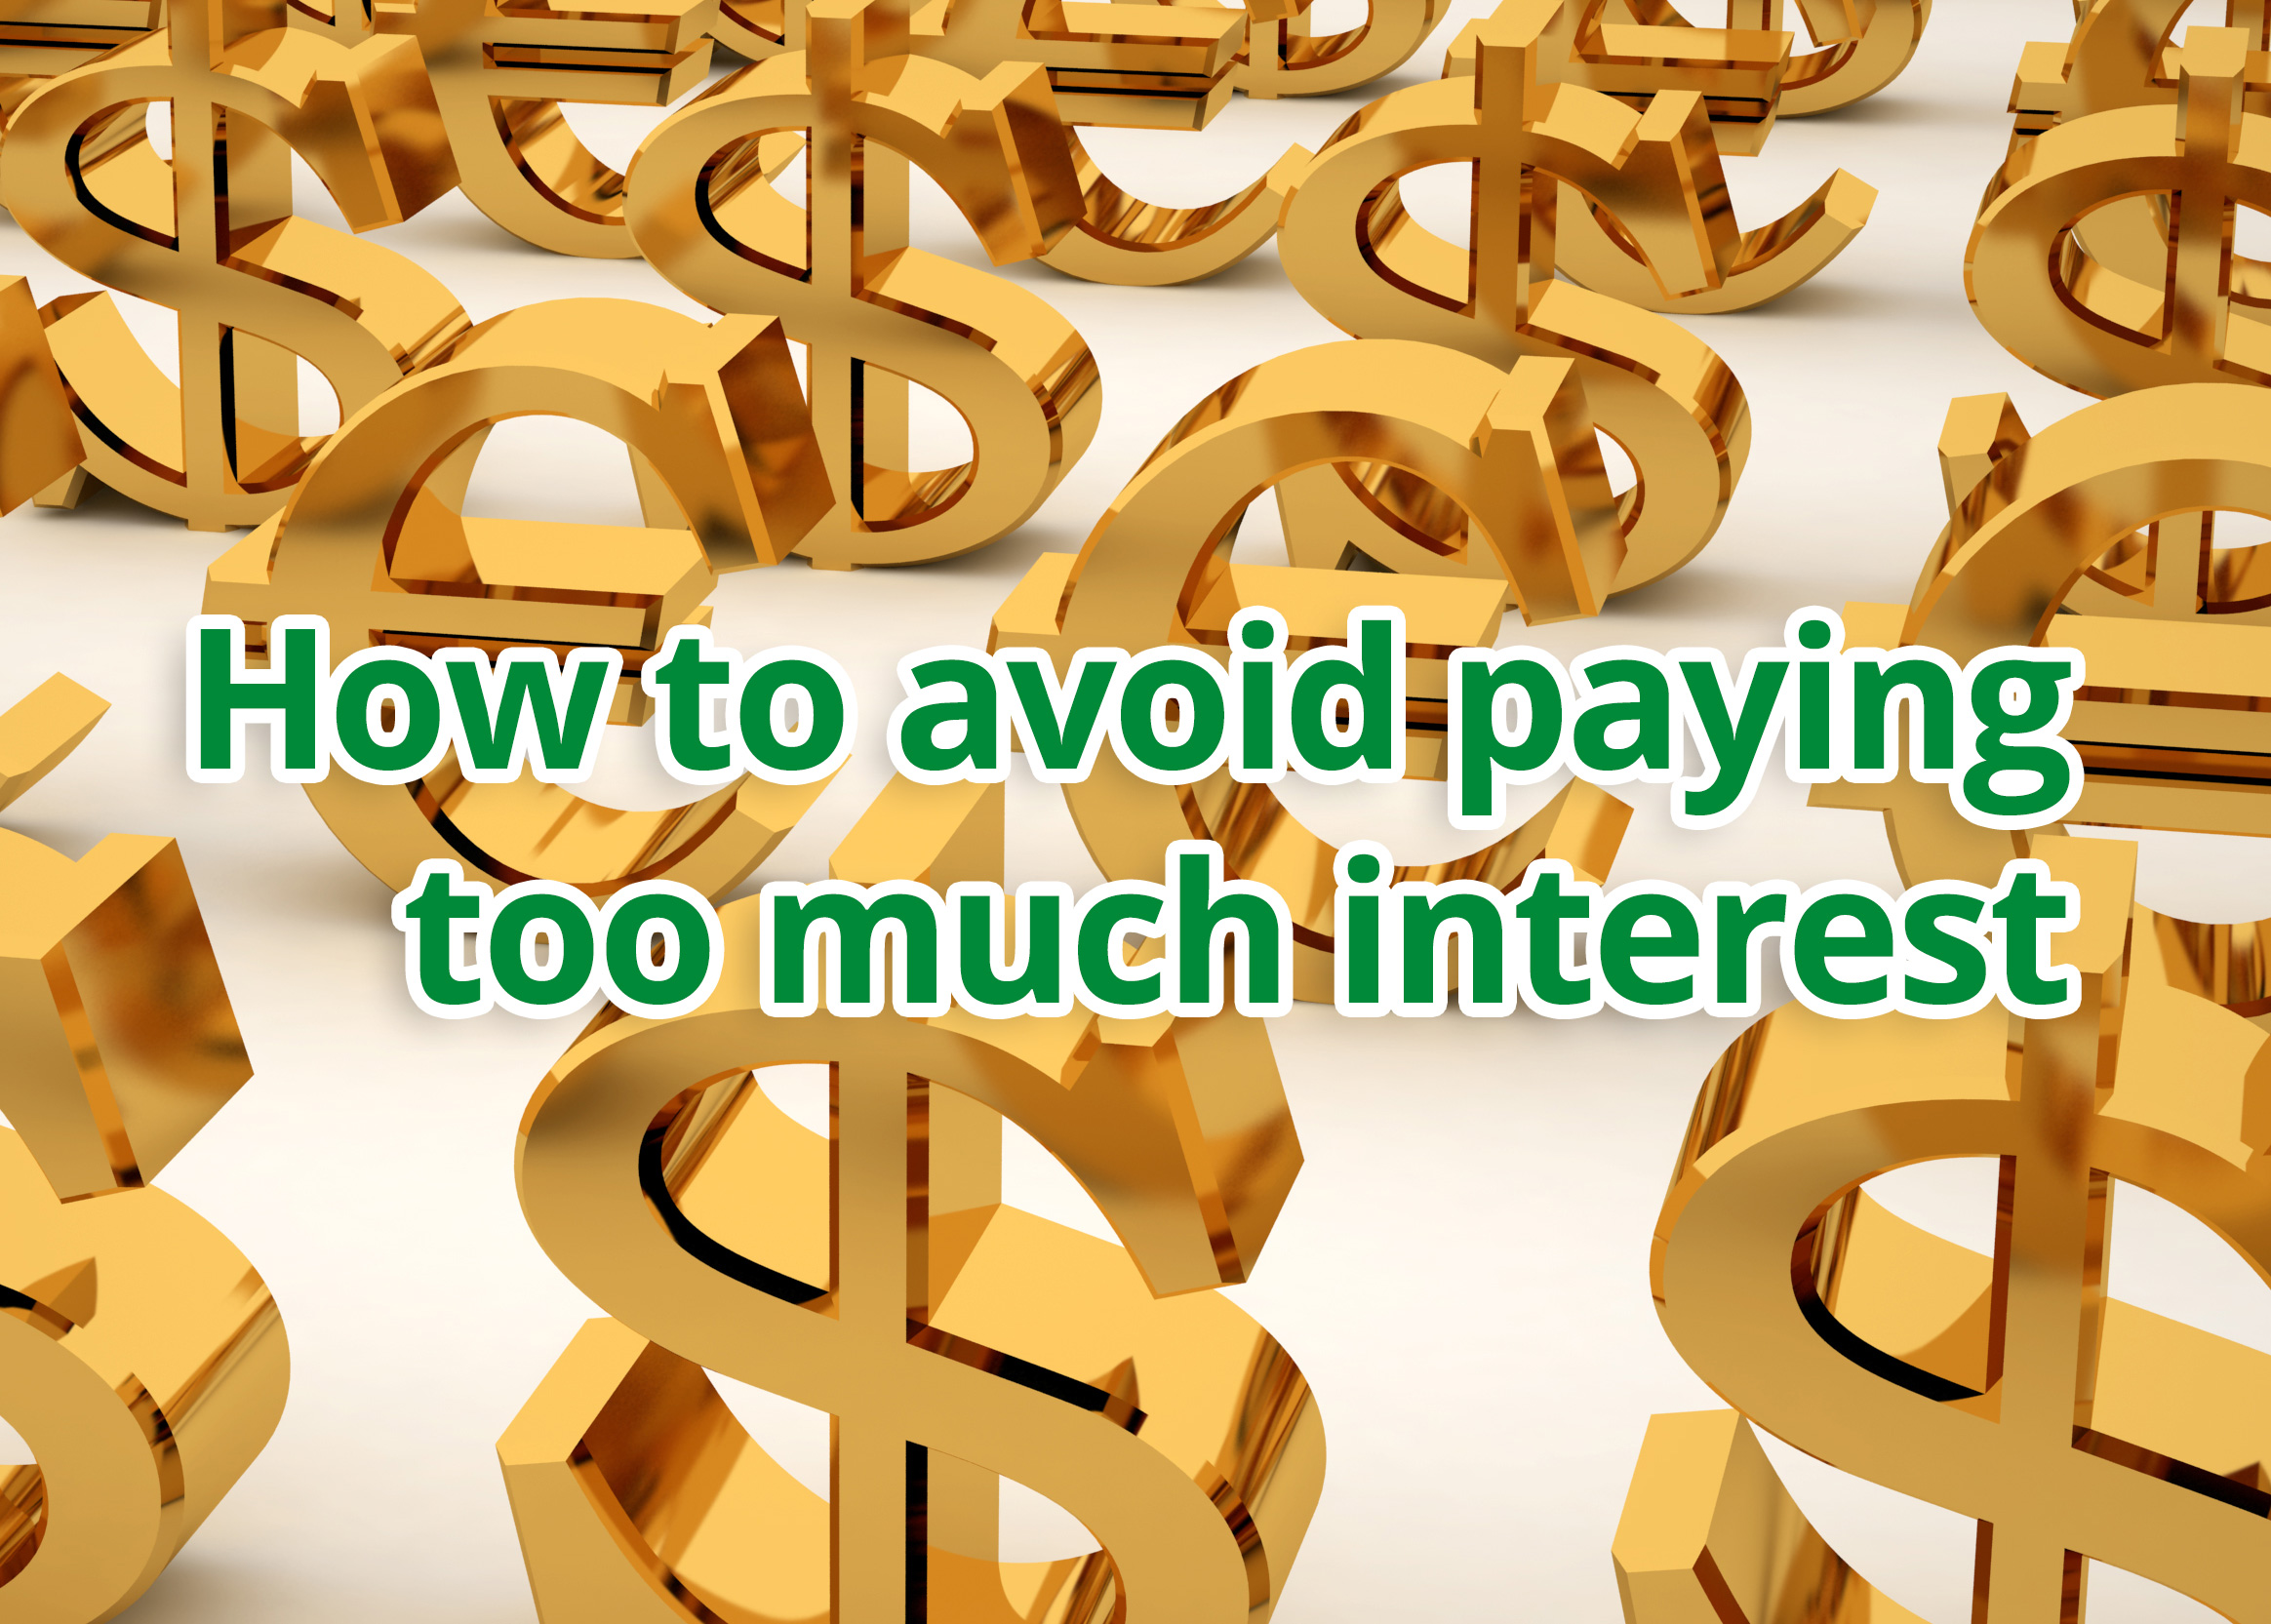 How to avoid paying too much interest